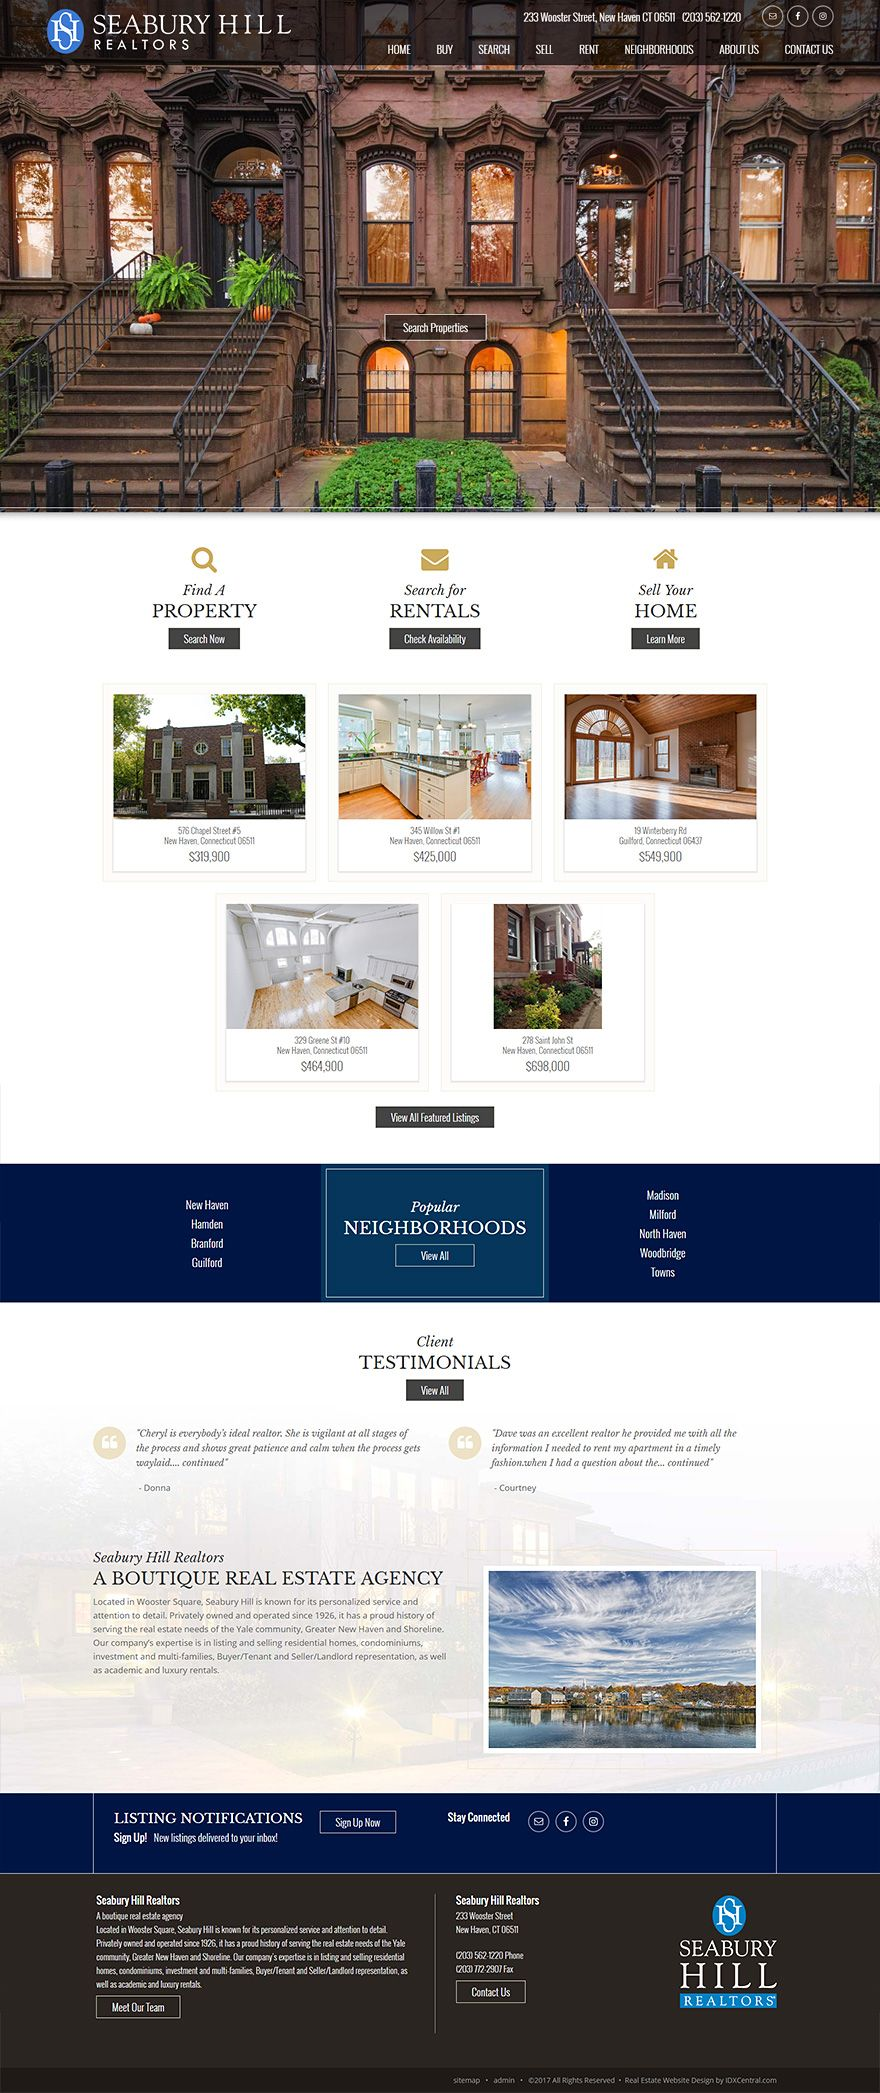 Connecticut Stunning Real Estate Website For Seabury Hill Realtors Real Estate Agency Located In Woos Real Estate Website Design Us Real Estate Real Estate